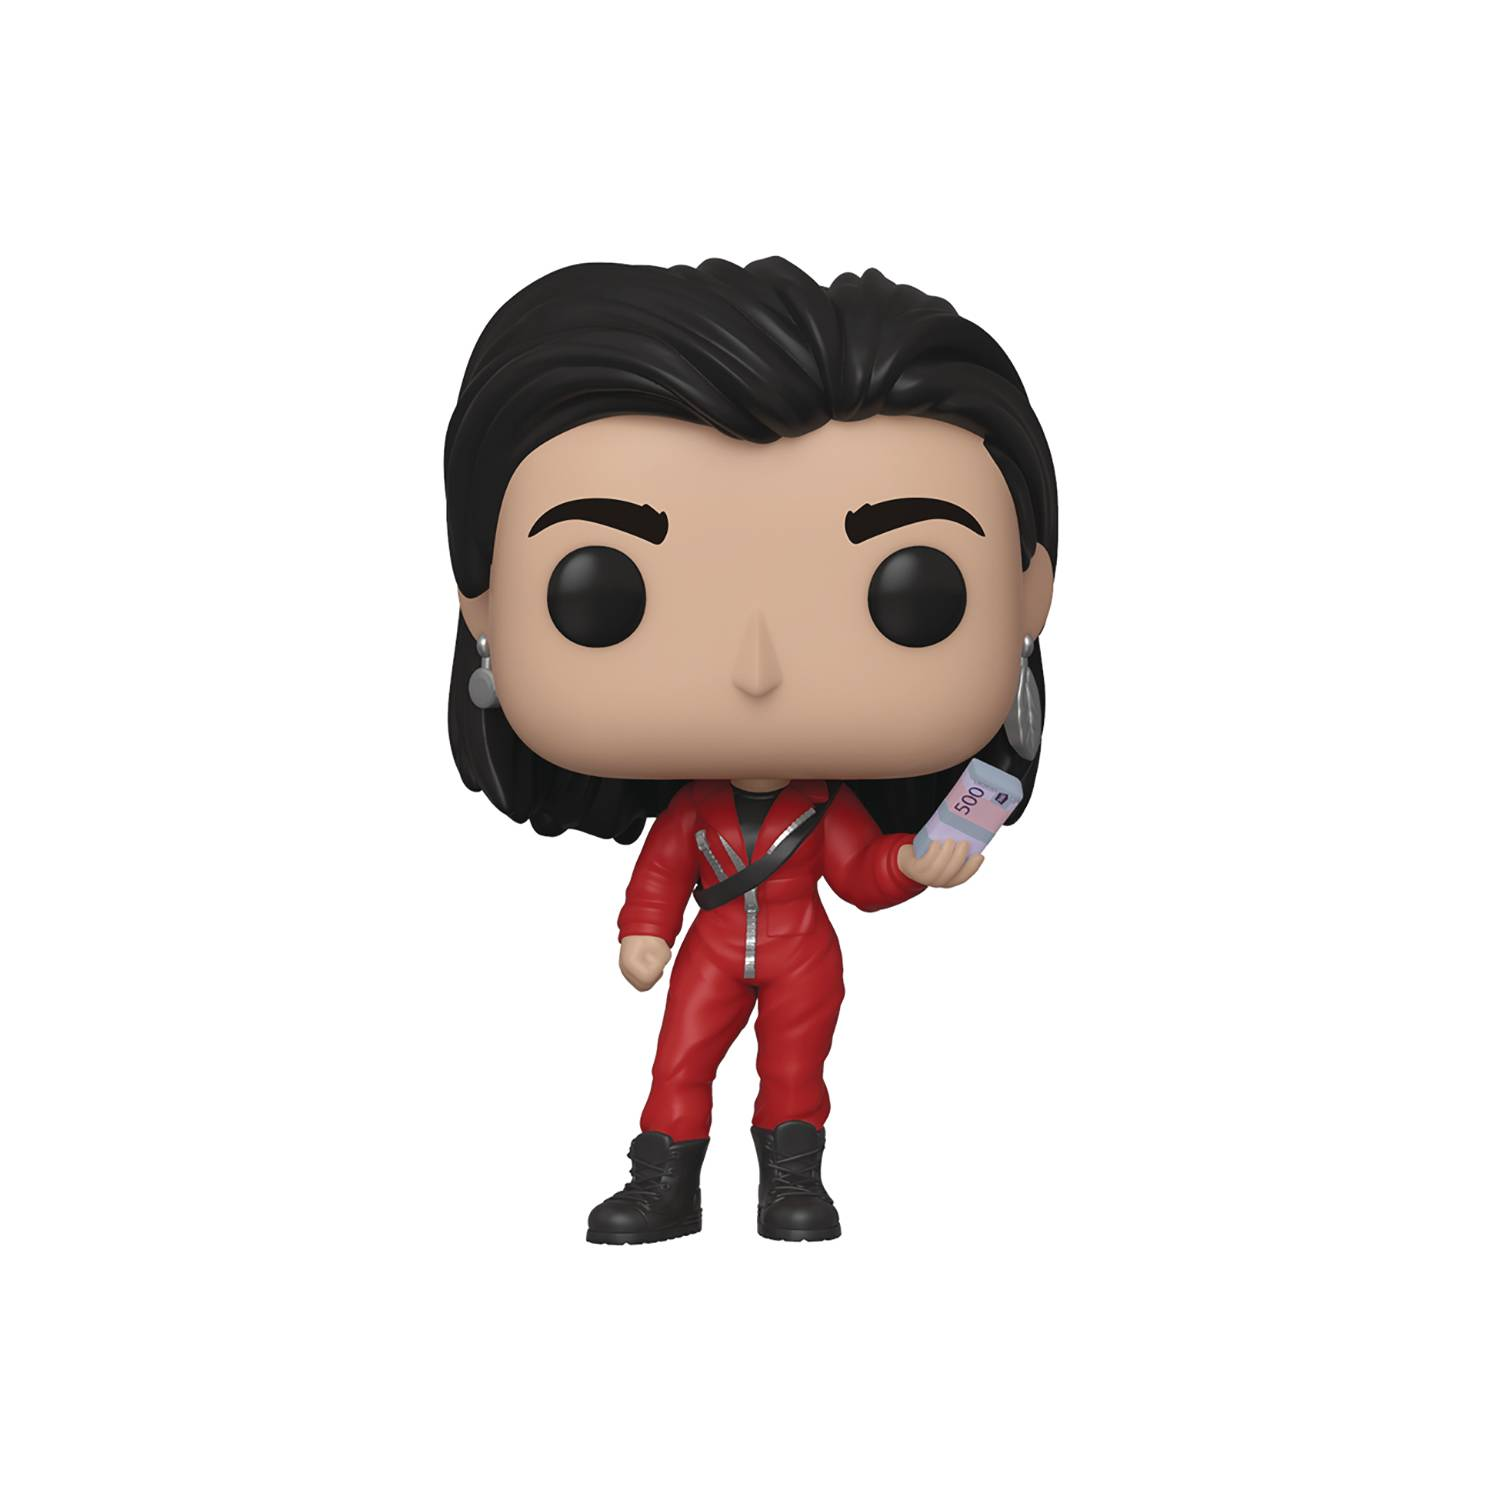 POP TV LA CASA DE PAPEL NAIROBI VINYL FIGURE